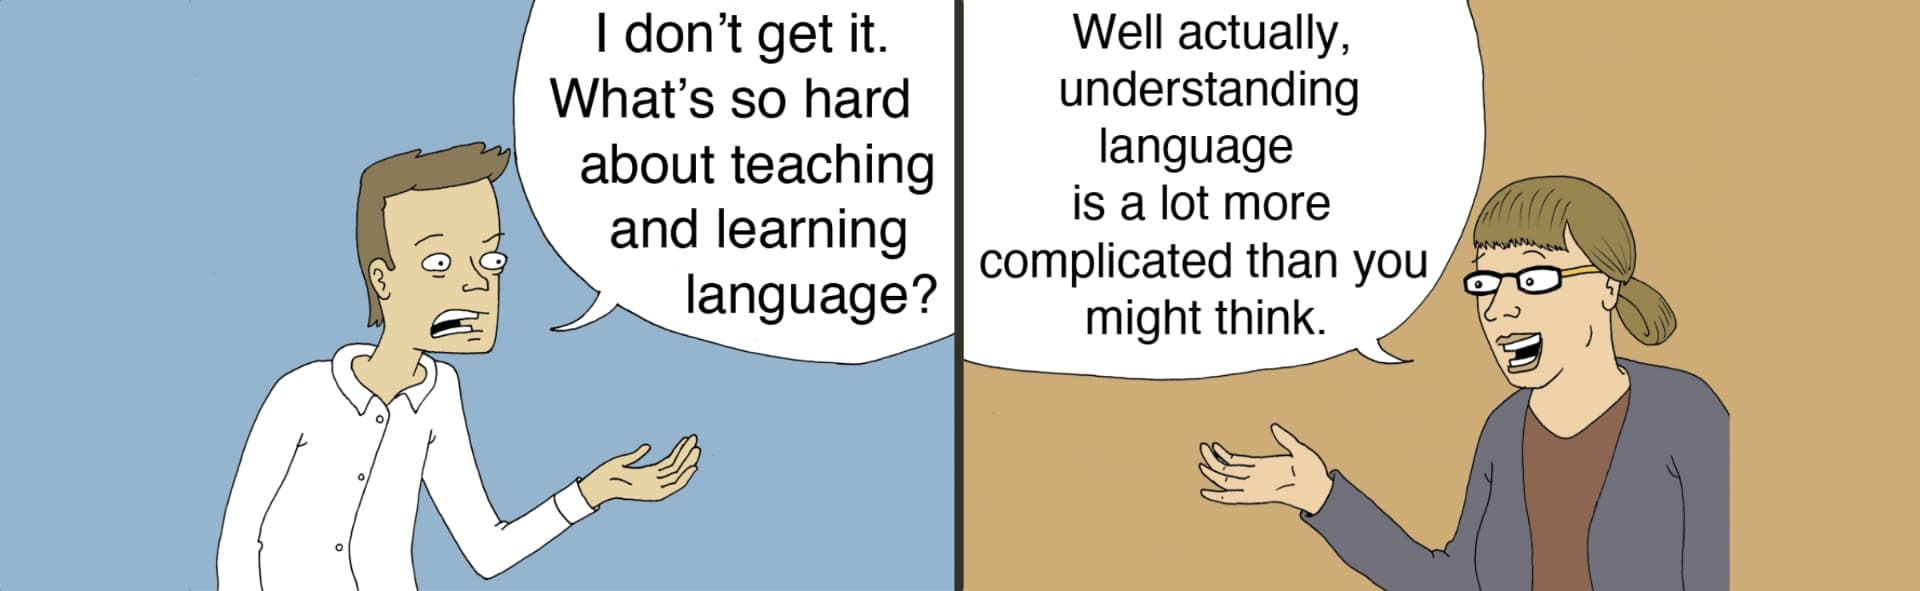 Cartoon of man and woman talking about language